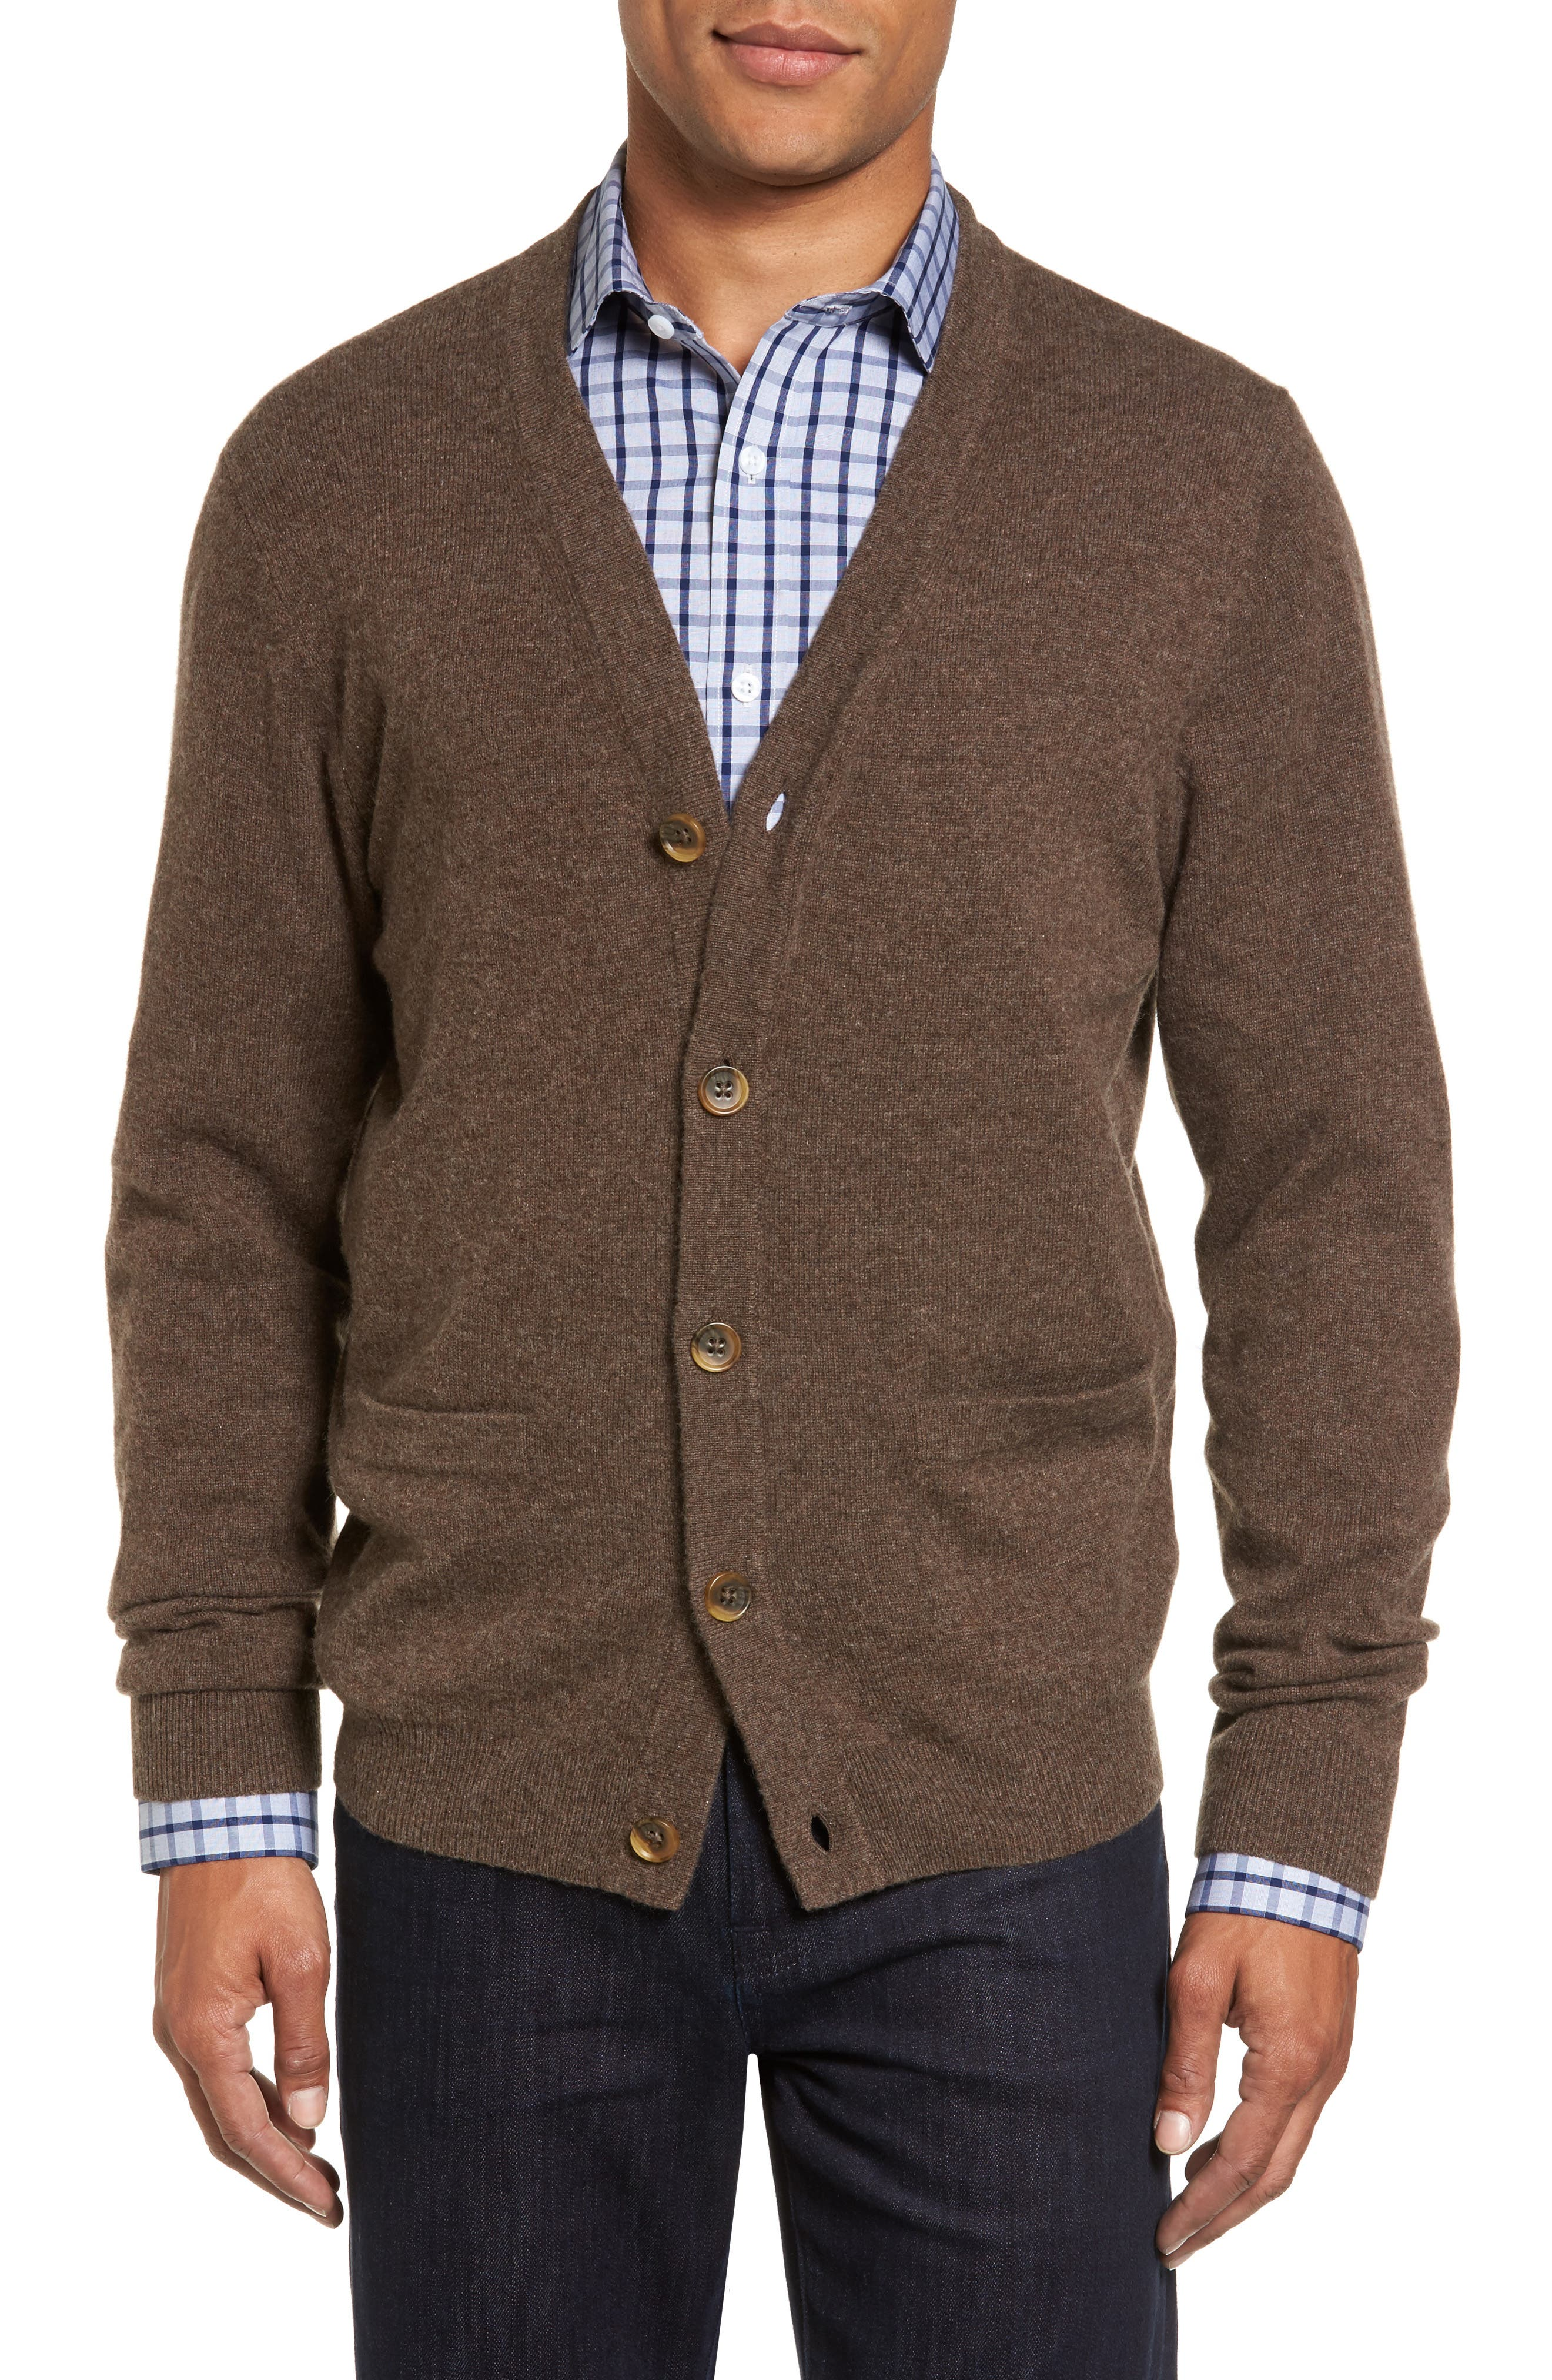 Alternate Image 1 Selected - Nordstrom Men's Shop Cashmere Button Front Cardigan